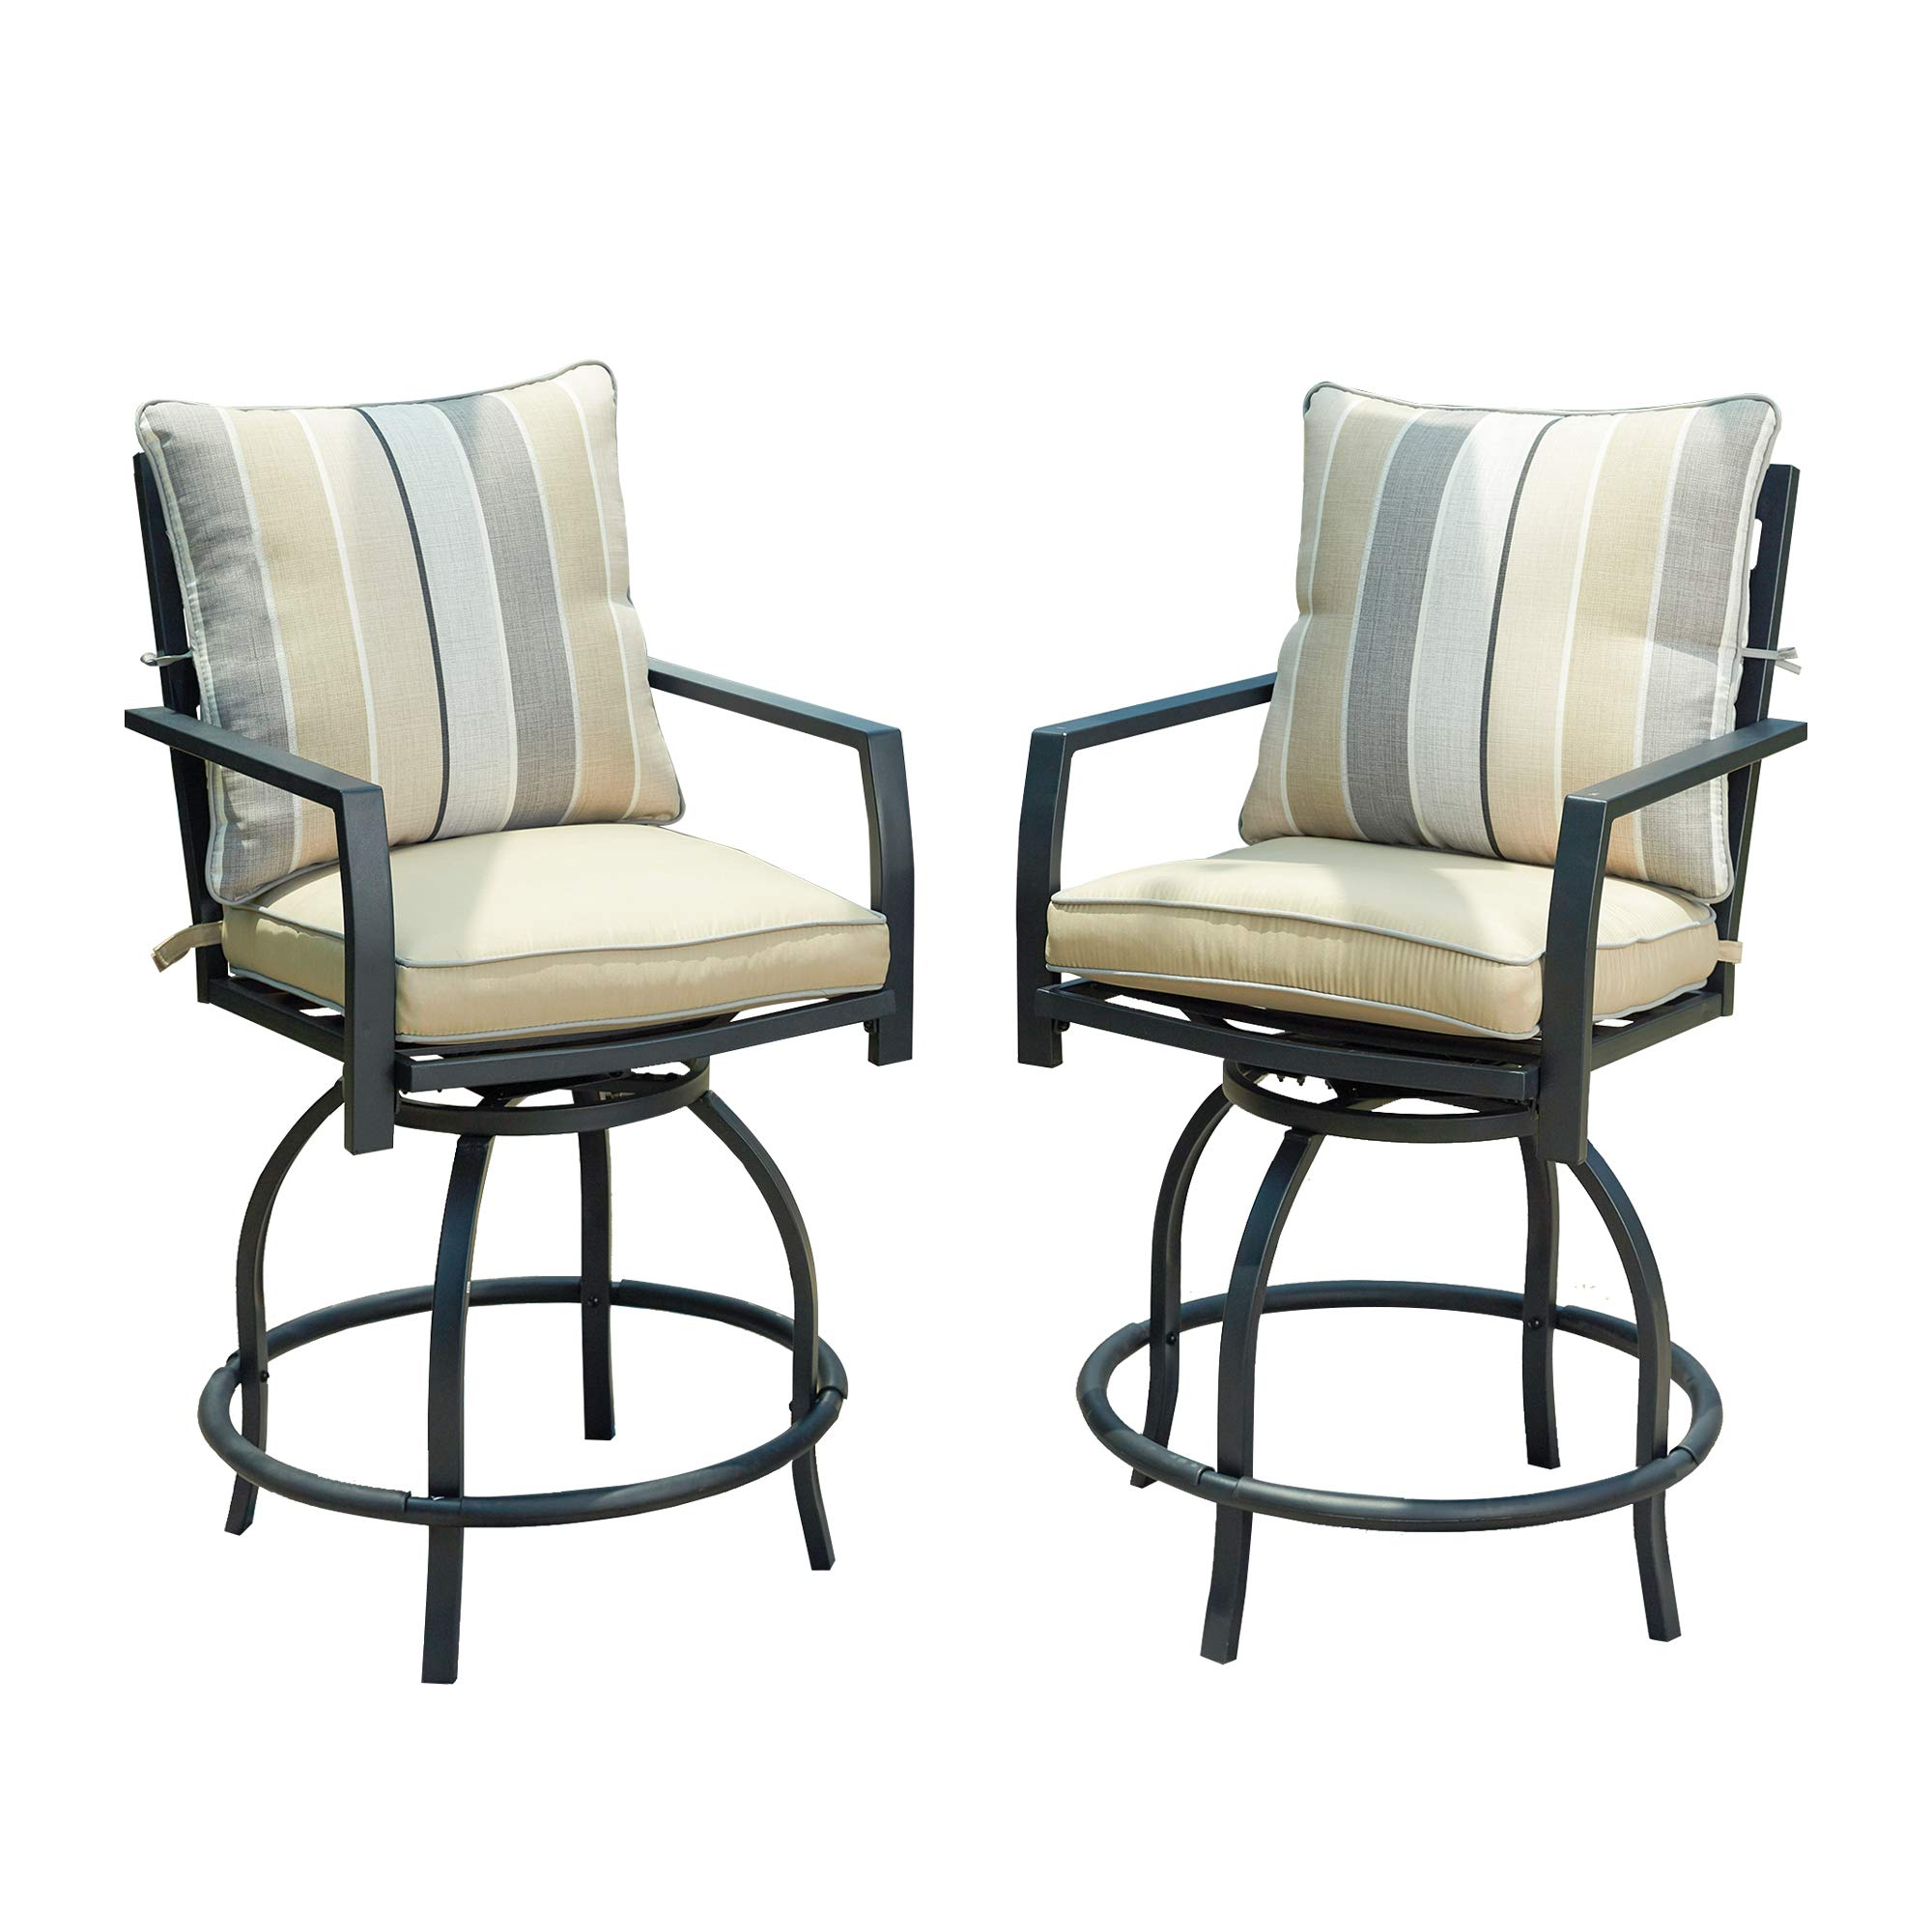 LOKATSE HOME Patio Height Chair Set of 2 Outdoor Swivel Bar Stools with Seat and Back Cushions, White-2